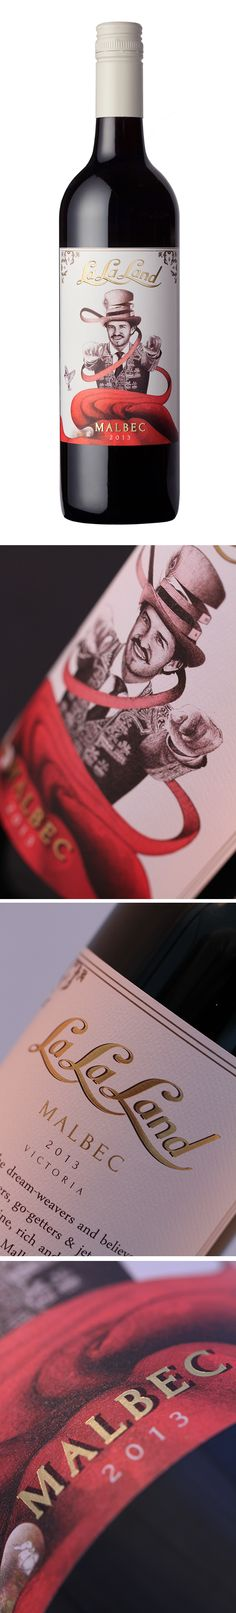 This is was of our favour design projects to complete for Concept wine brand La La Land Wines. This is also one of our Best Wine Label Designs. The theme is Alice in Wonderland inspired but with a Spanish and Surreal Twist. The main character 'El Loco' or the Mad Hatter is in Matador dress and with his red cloke invites people to come to La La Land.